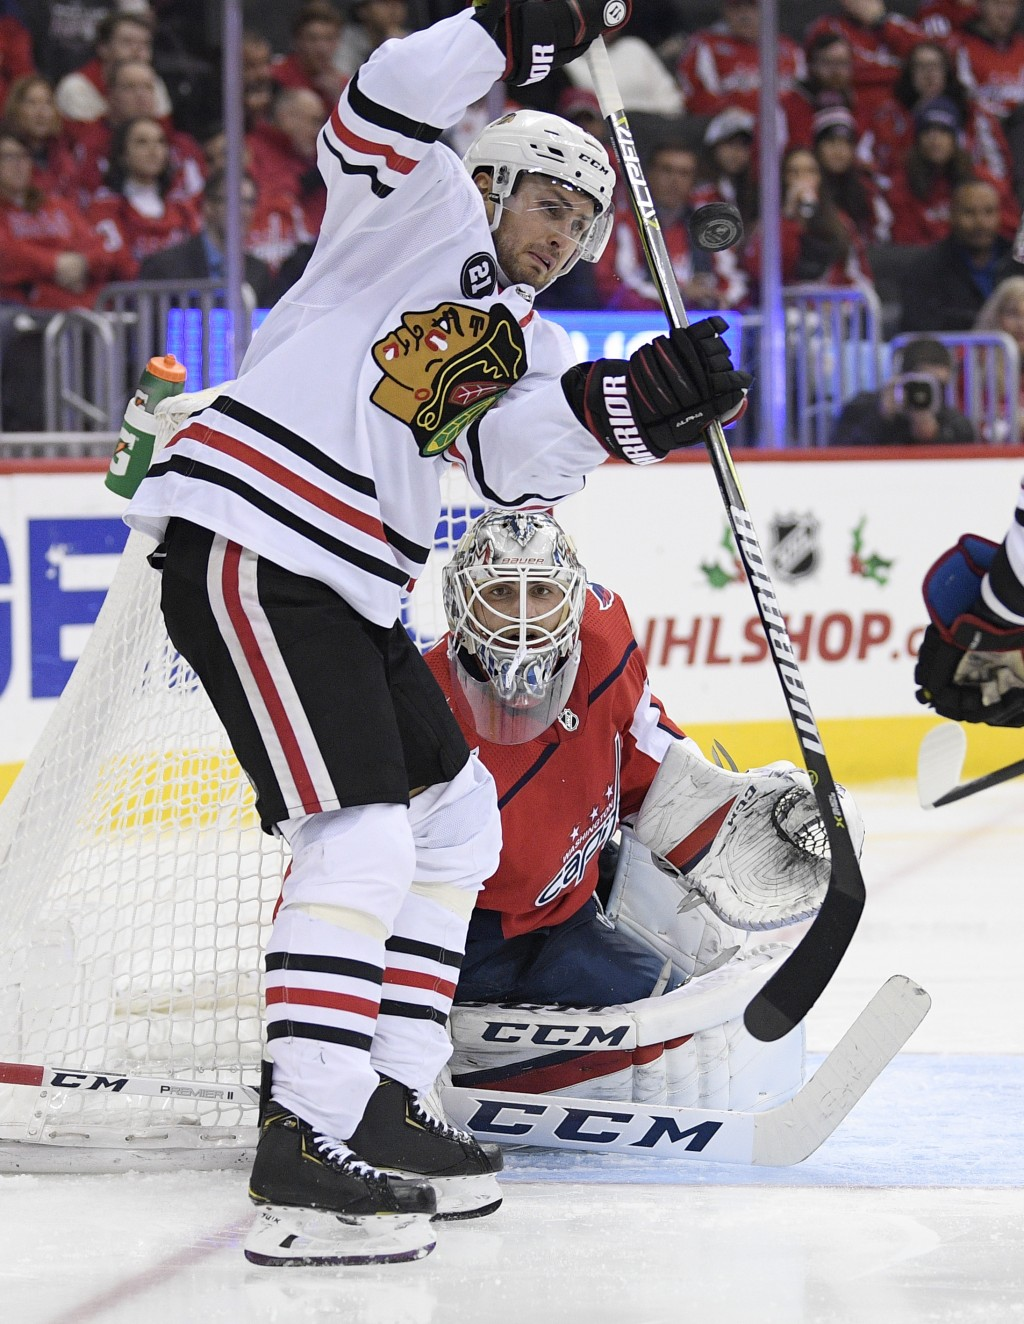 Chicago Blackhawks center Marcus Kruger, front, watches the puck in front of Washington Capitals goaltender Braden Holtby, back, during the second per